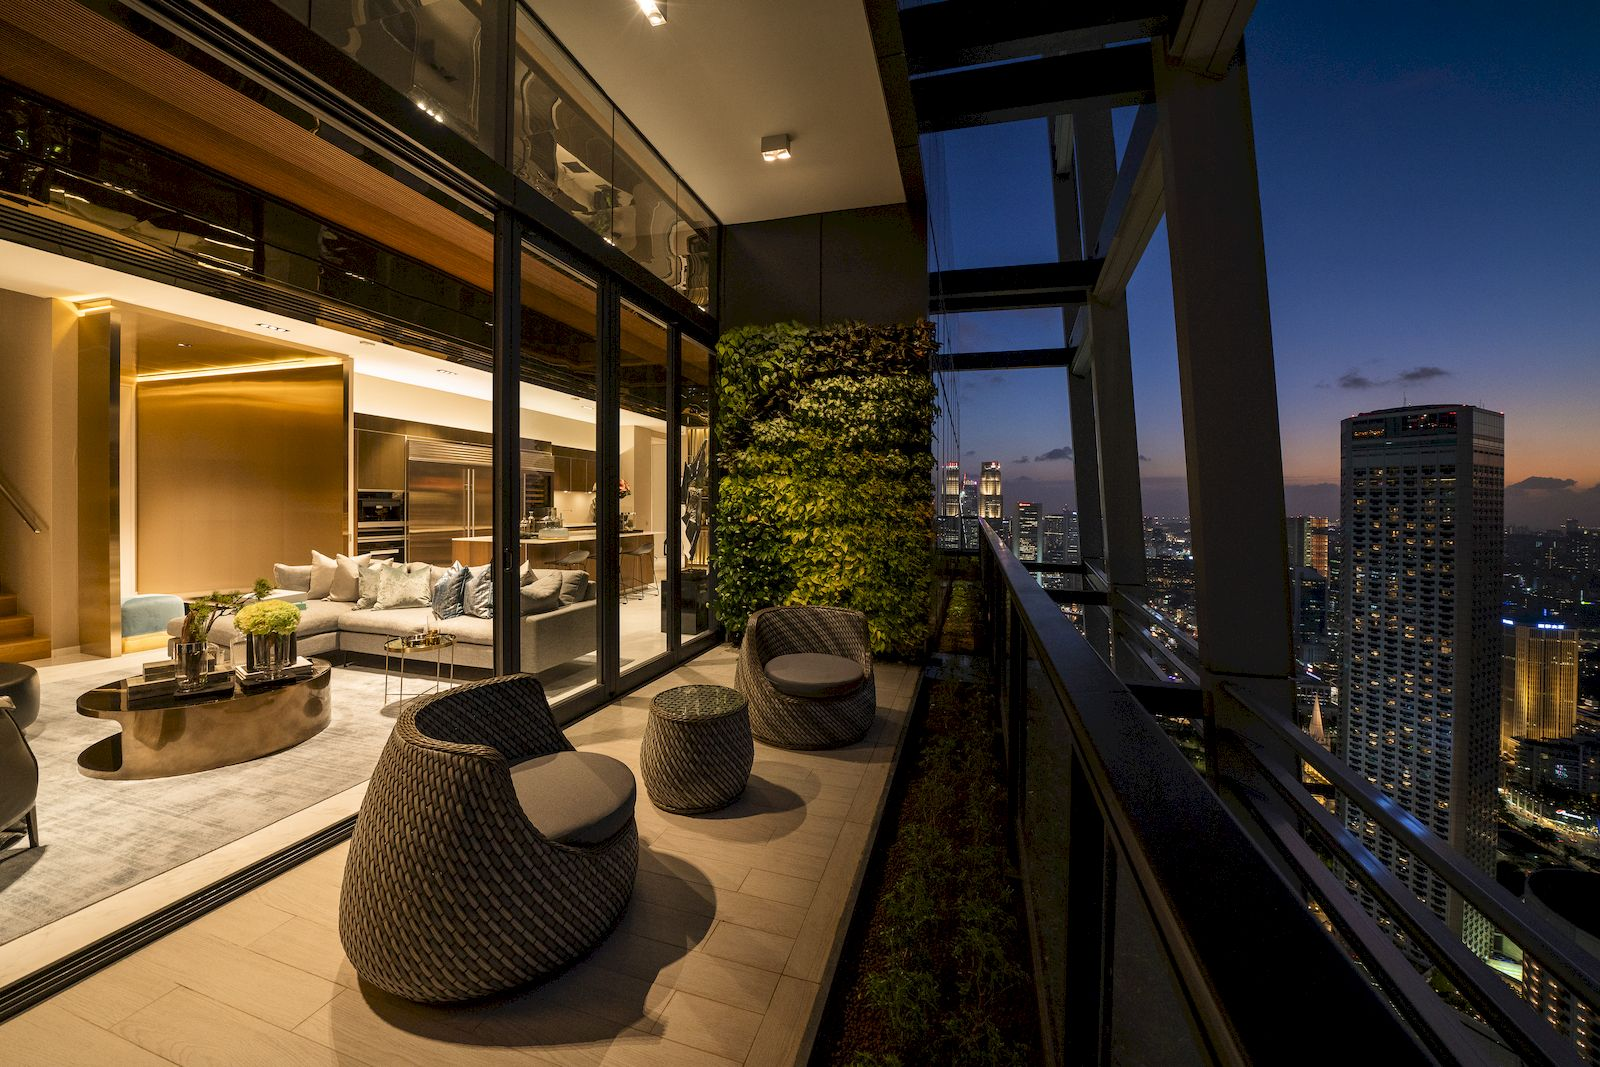 South Beach Residences takes luxury living to new heights